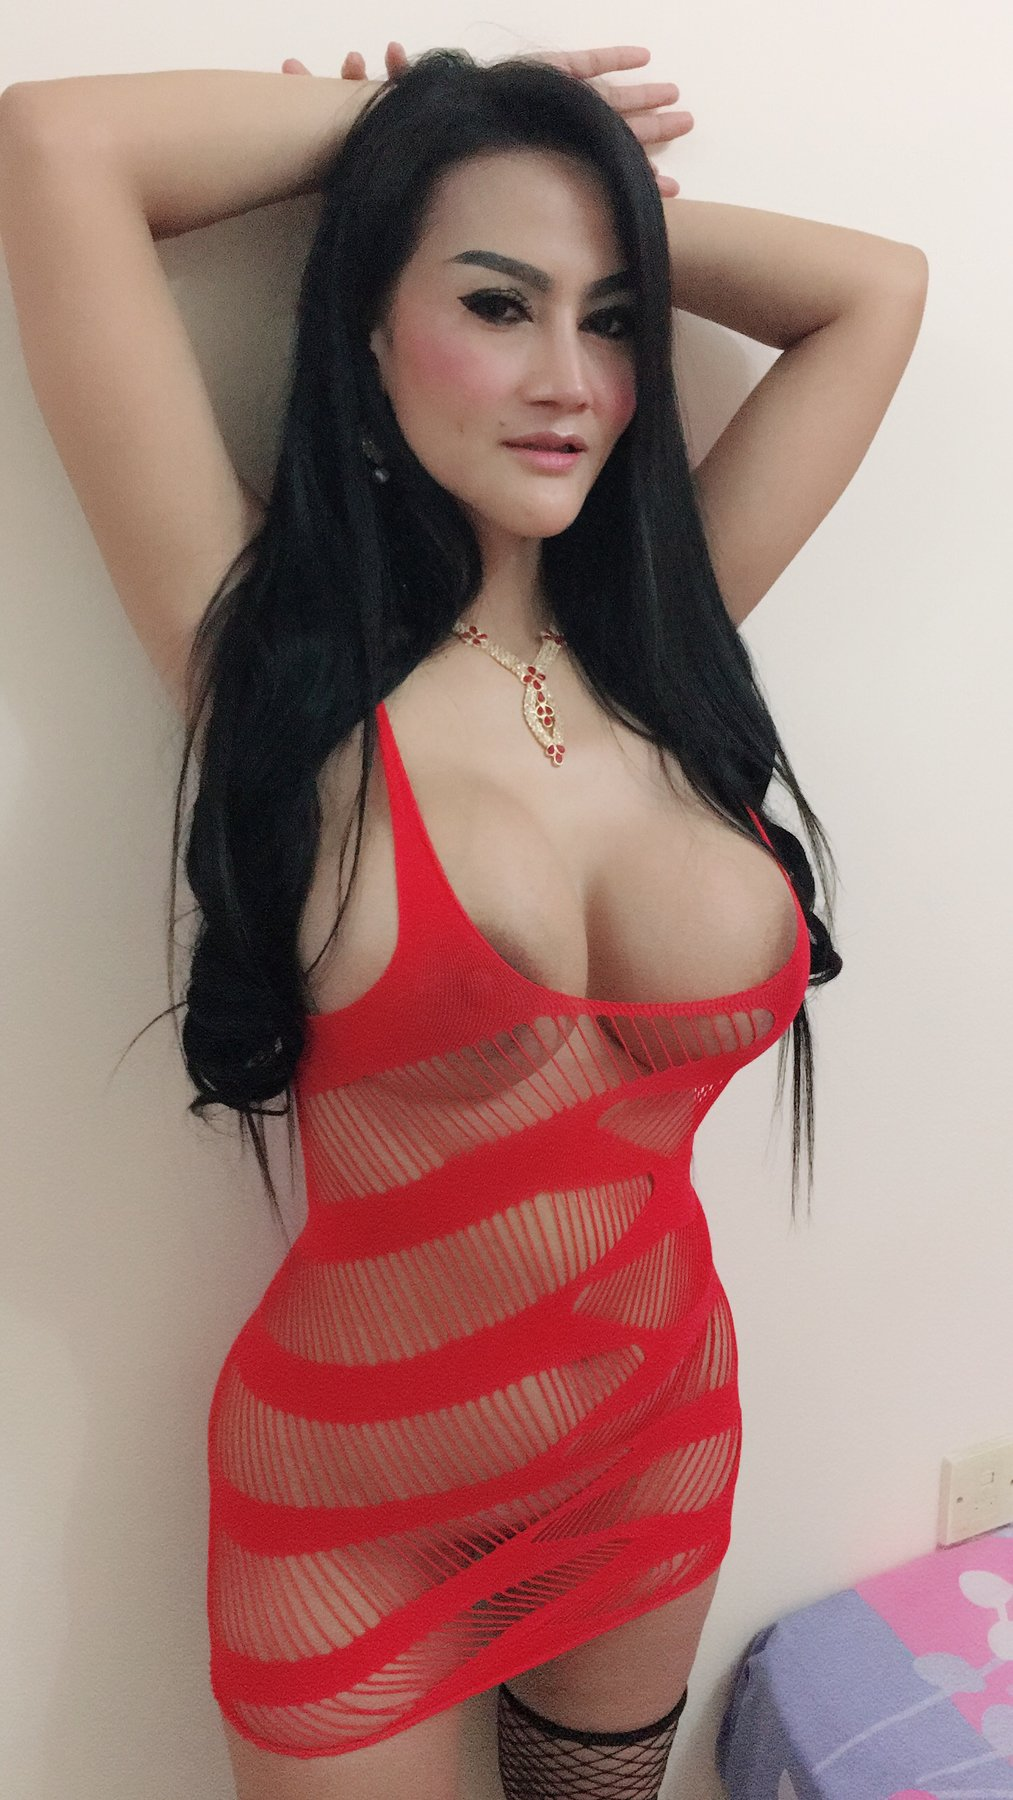 escorte date tao tantra massage